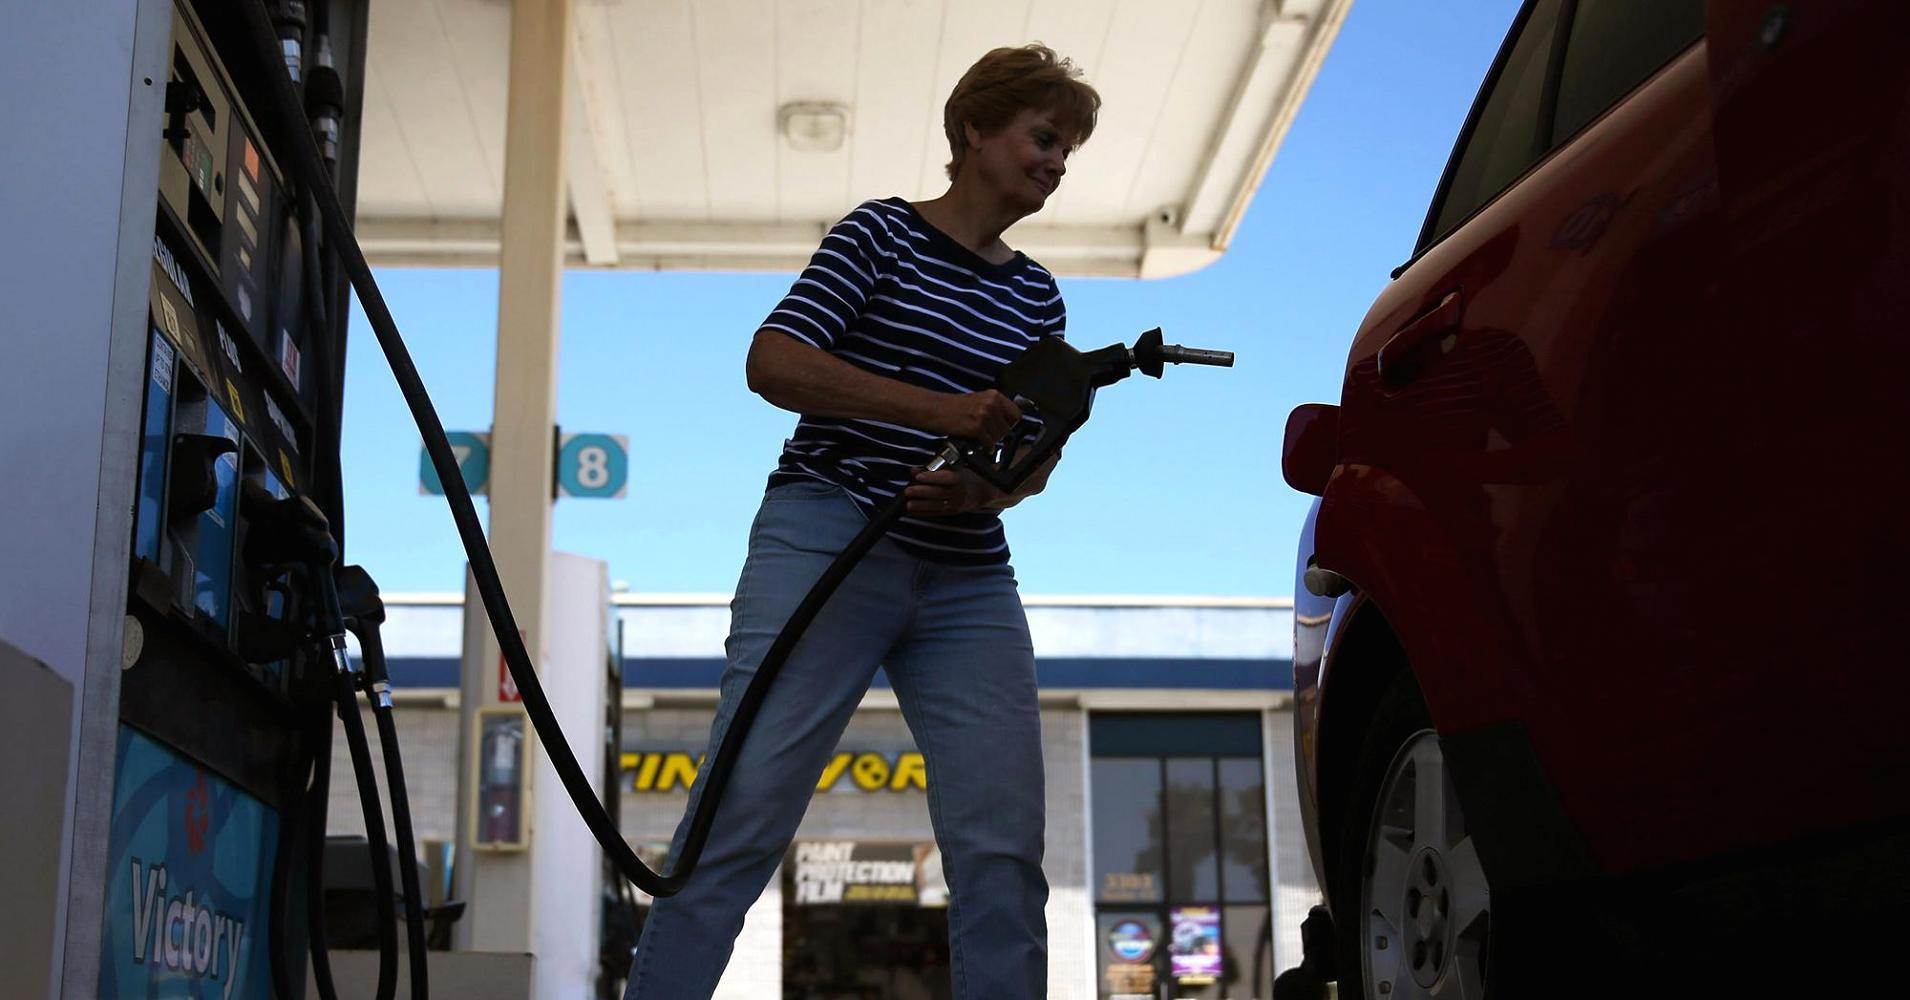 Rising gas prices will 'cool off': Expert